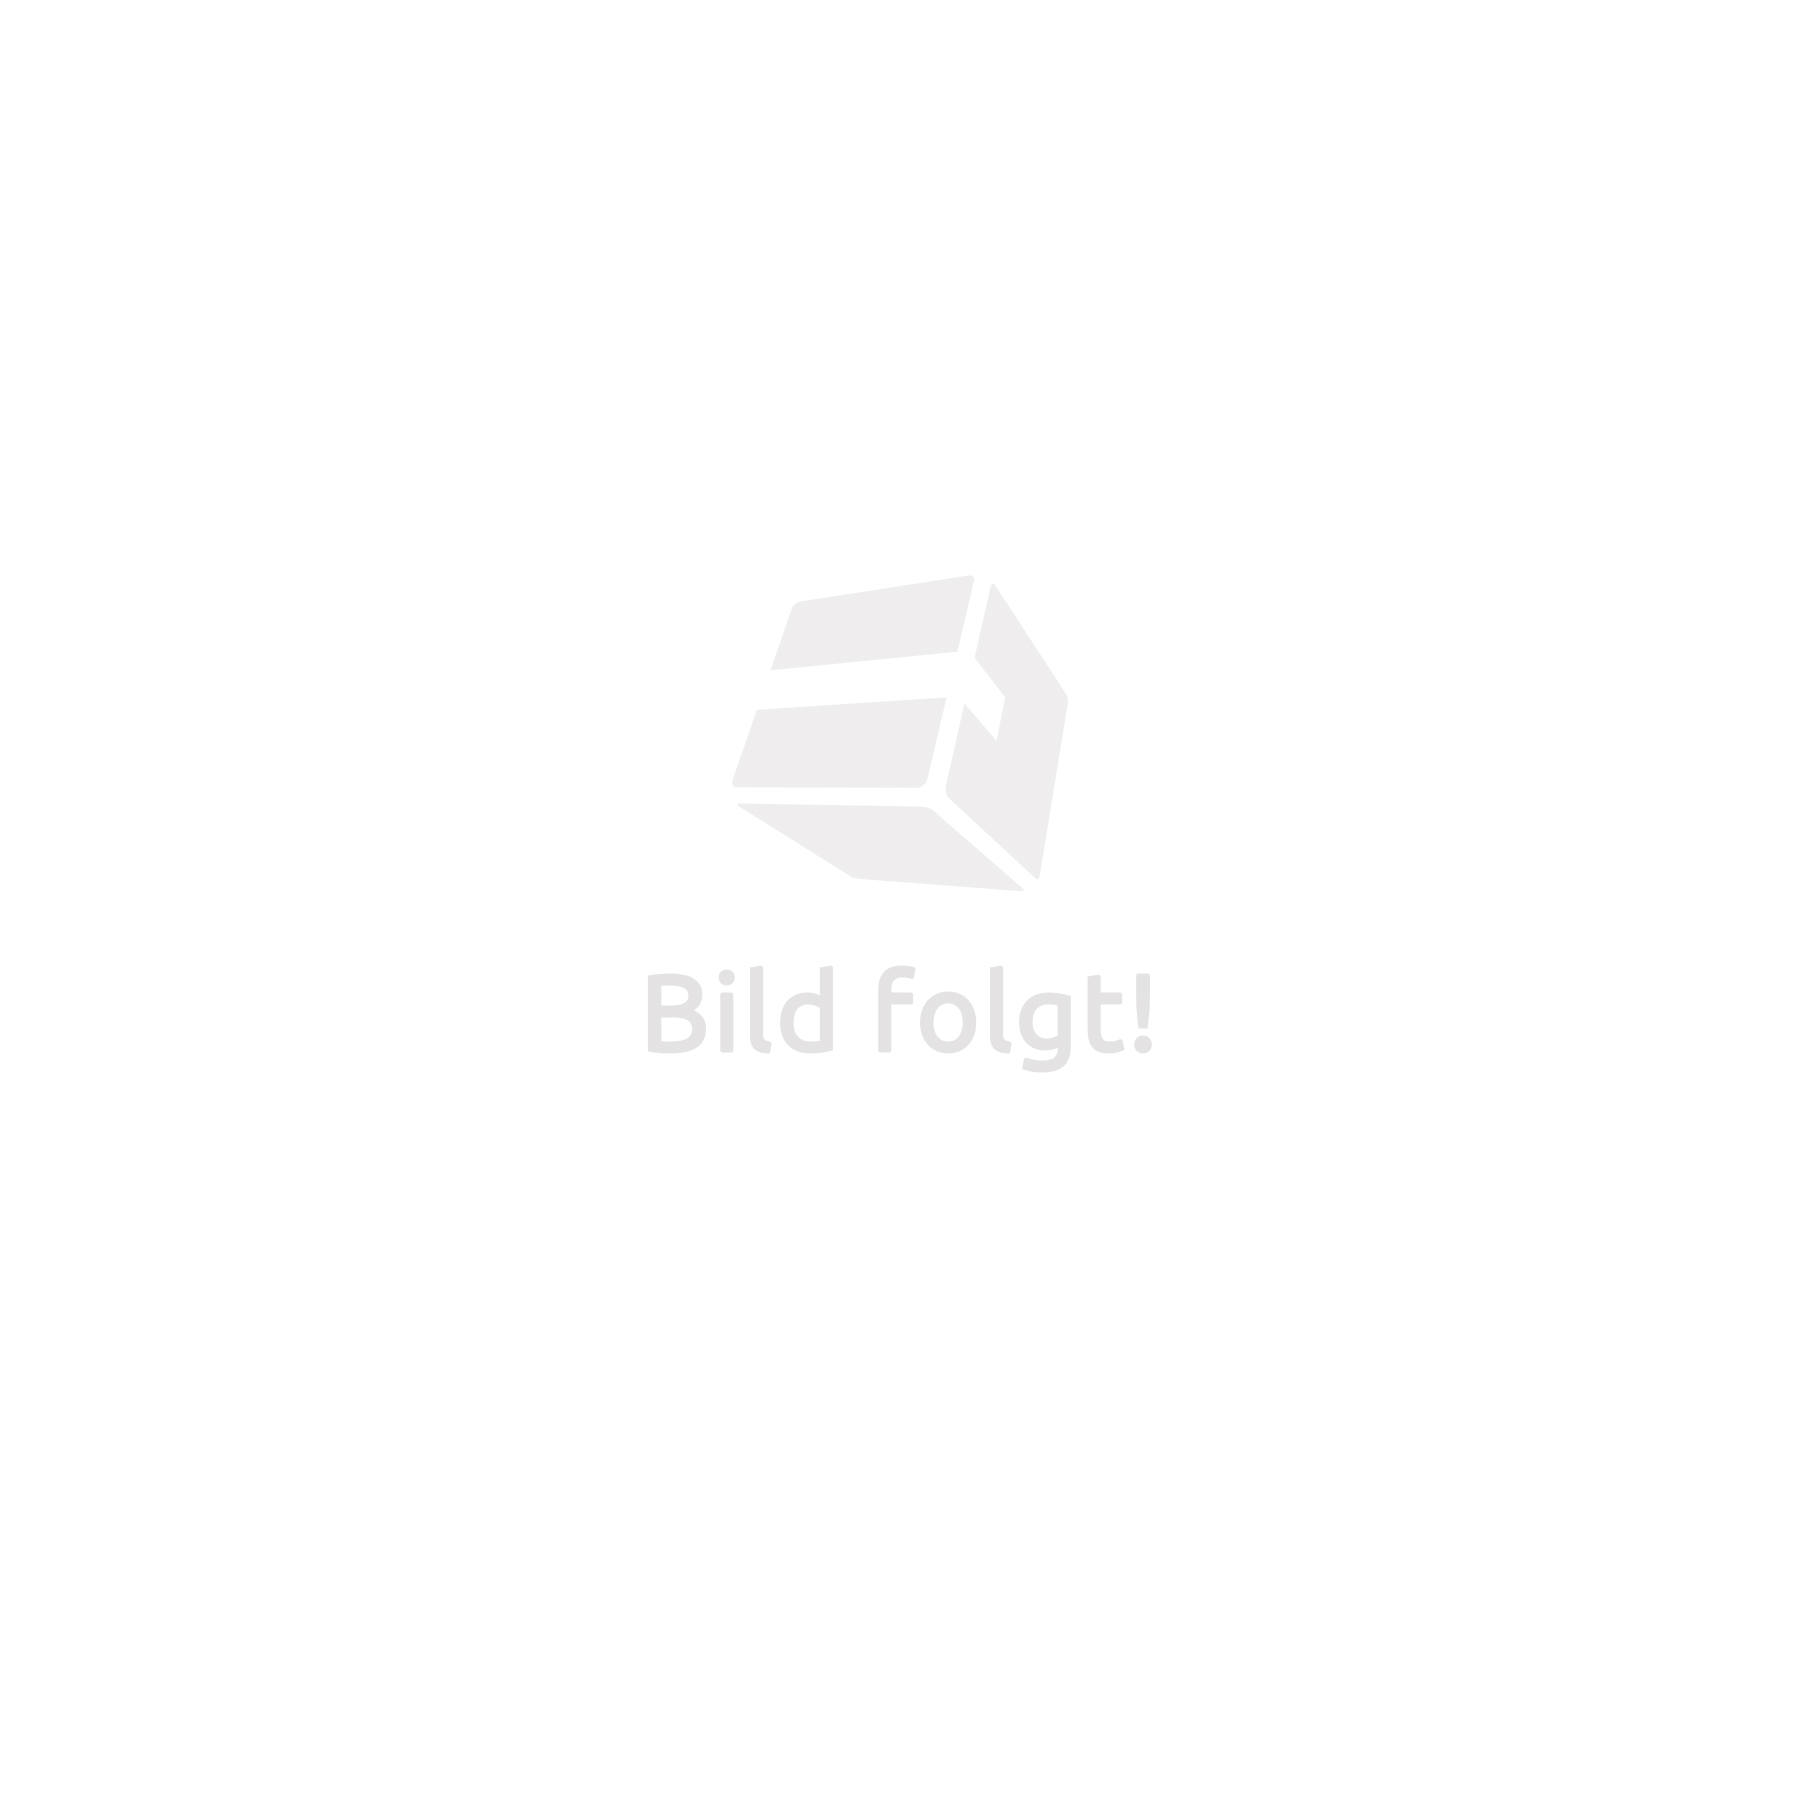 Support tv mural orientable et inclinable lcd plasma led - Support tv 55 orientable ...